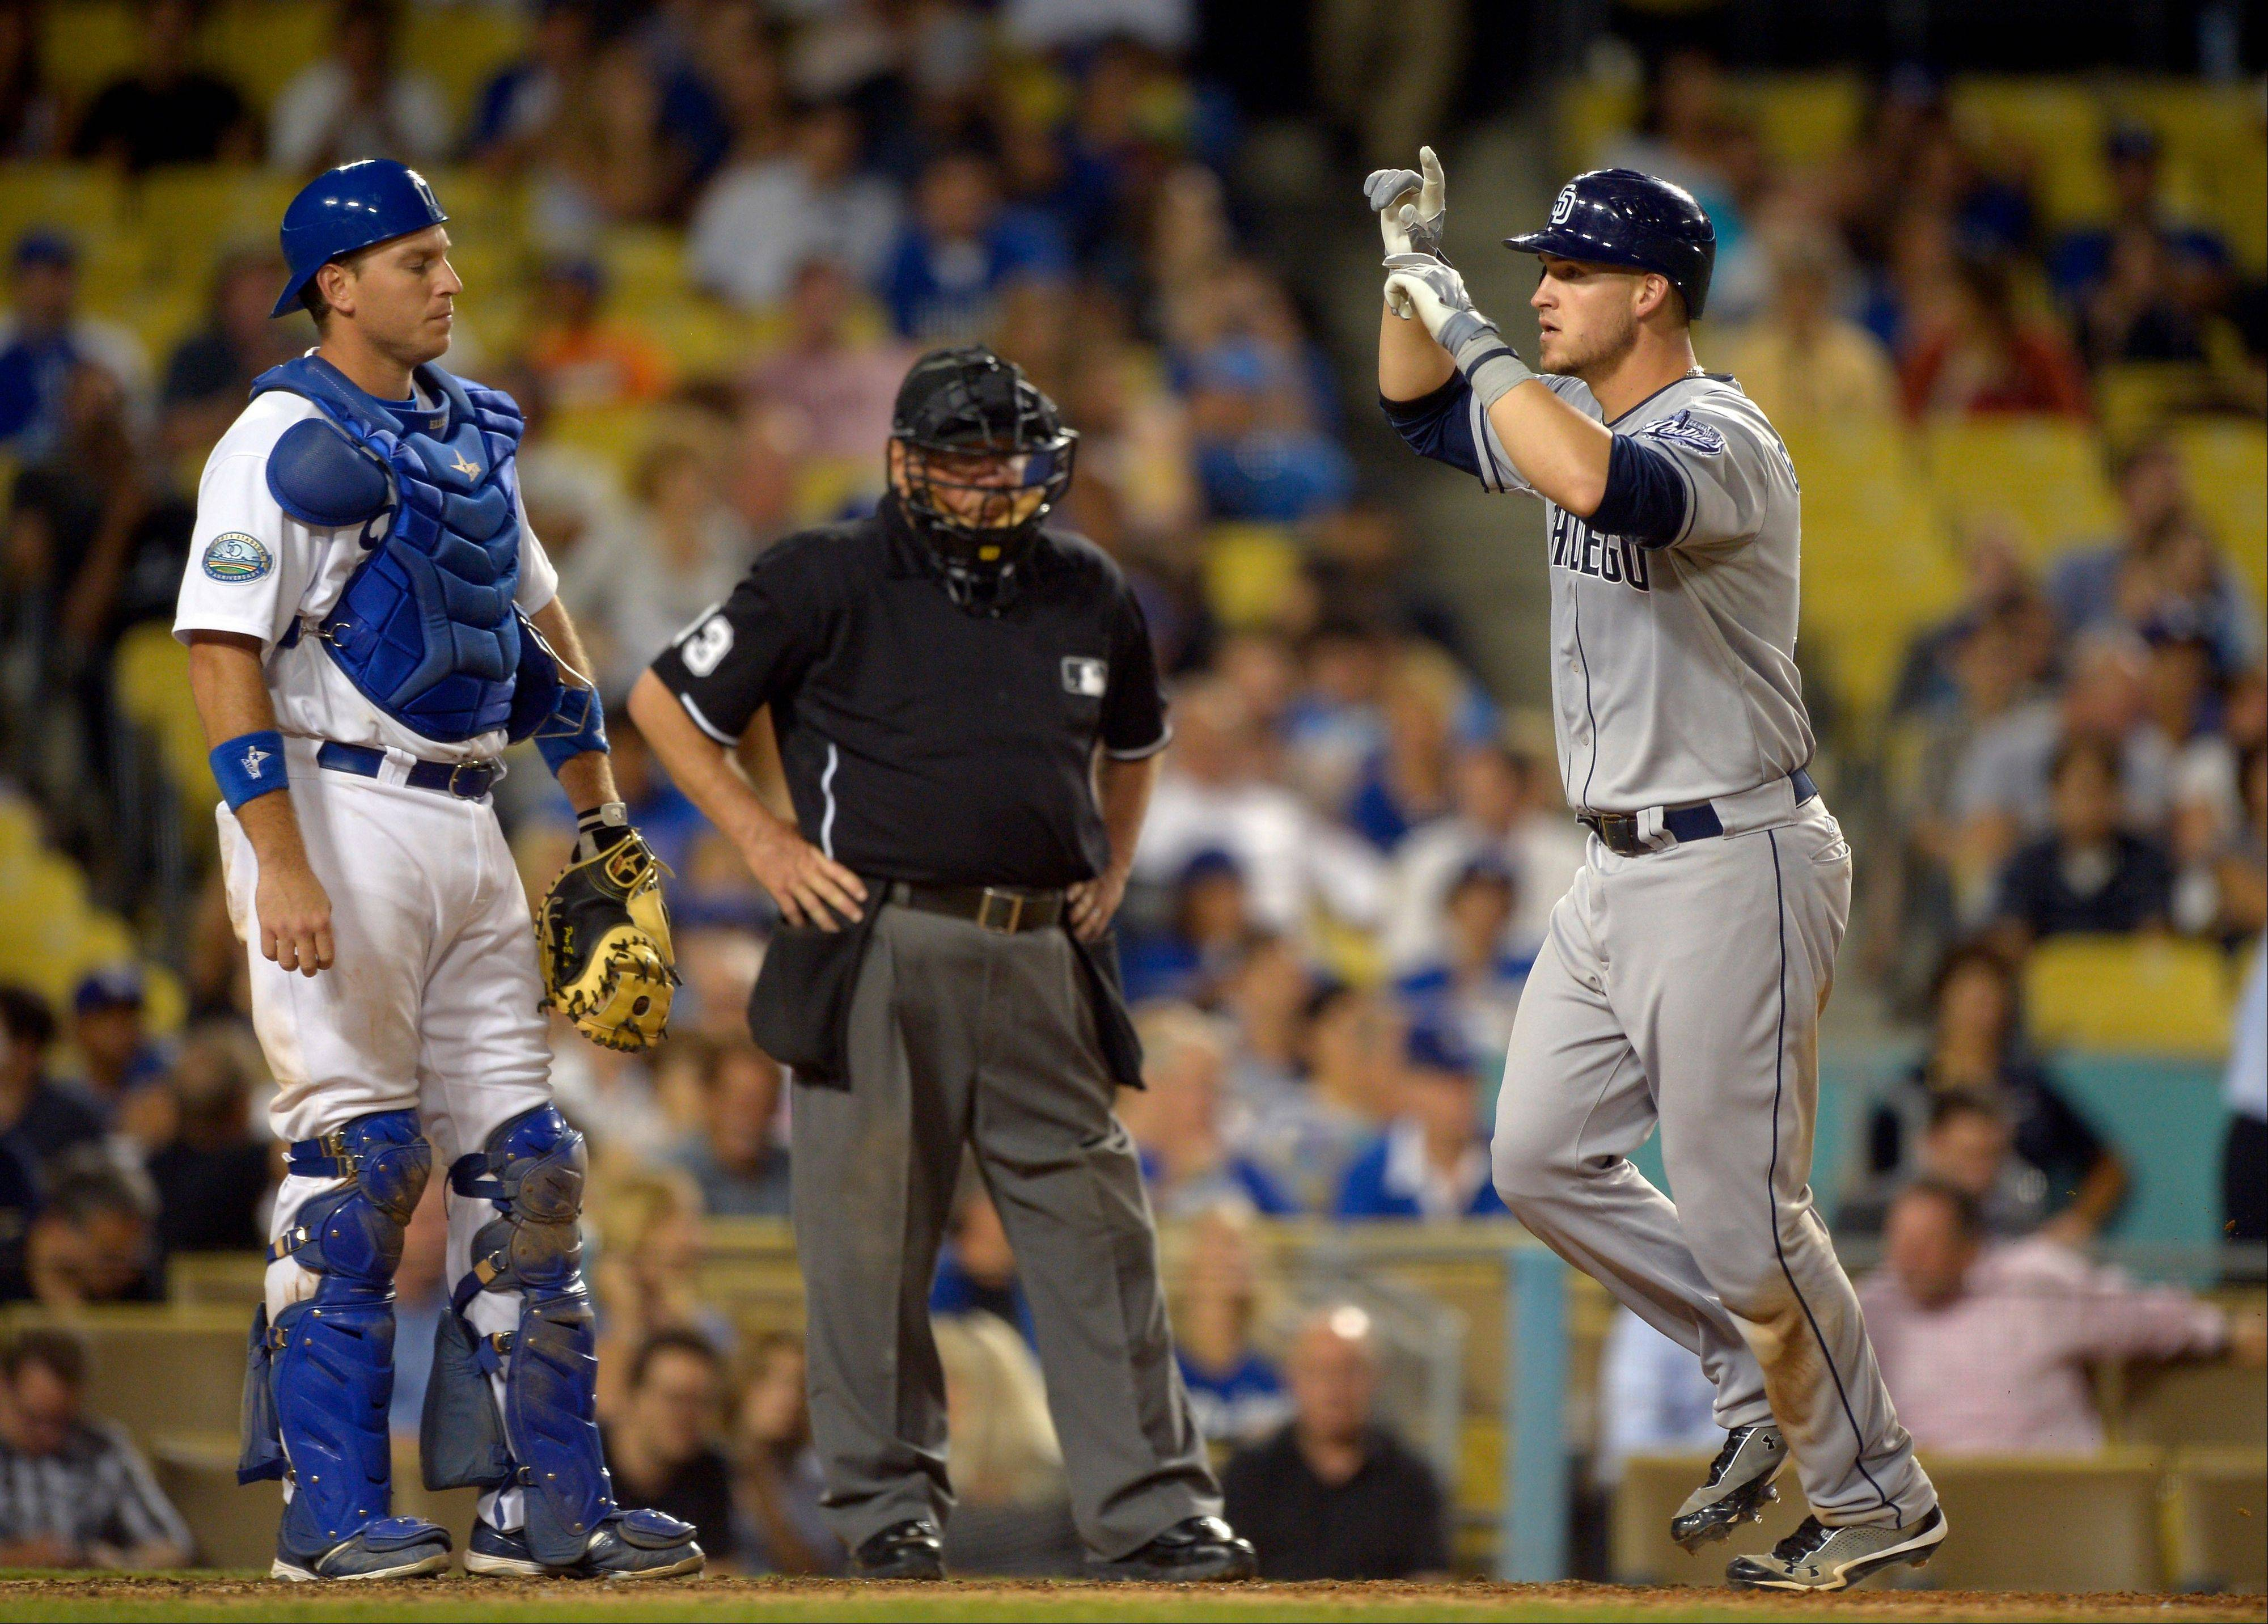 San Diego's Yasmani Grandal crosses the plate on his two-run home run as Dodgers catcher A.J. Ellis and home plate umpire Derryl Cousins watch during the eighth inning Tuesday in Los Angeles.